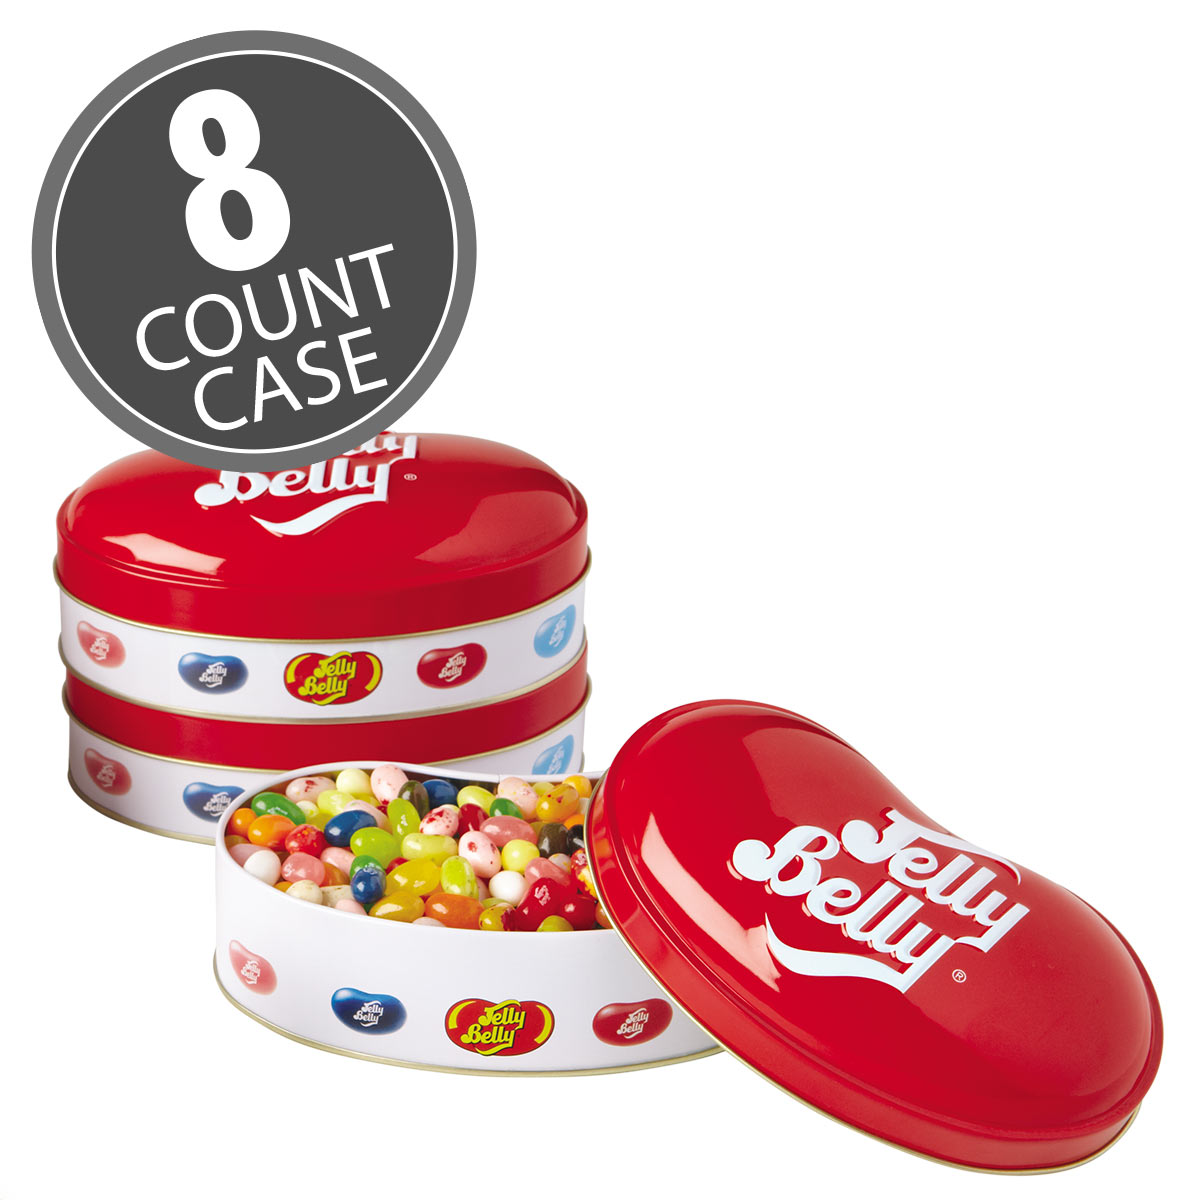 Jelly Belly Bean Tin with 6.5 oz of 20 assorted flavor jelly beans. The large bean-shaped container can be refilled with other candy!